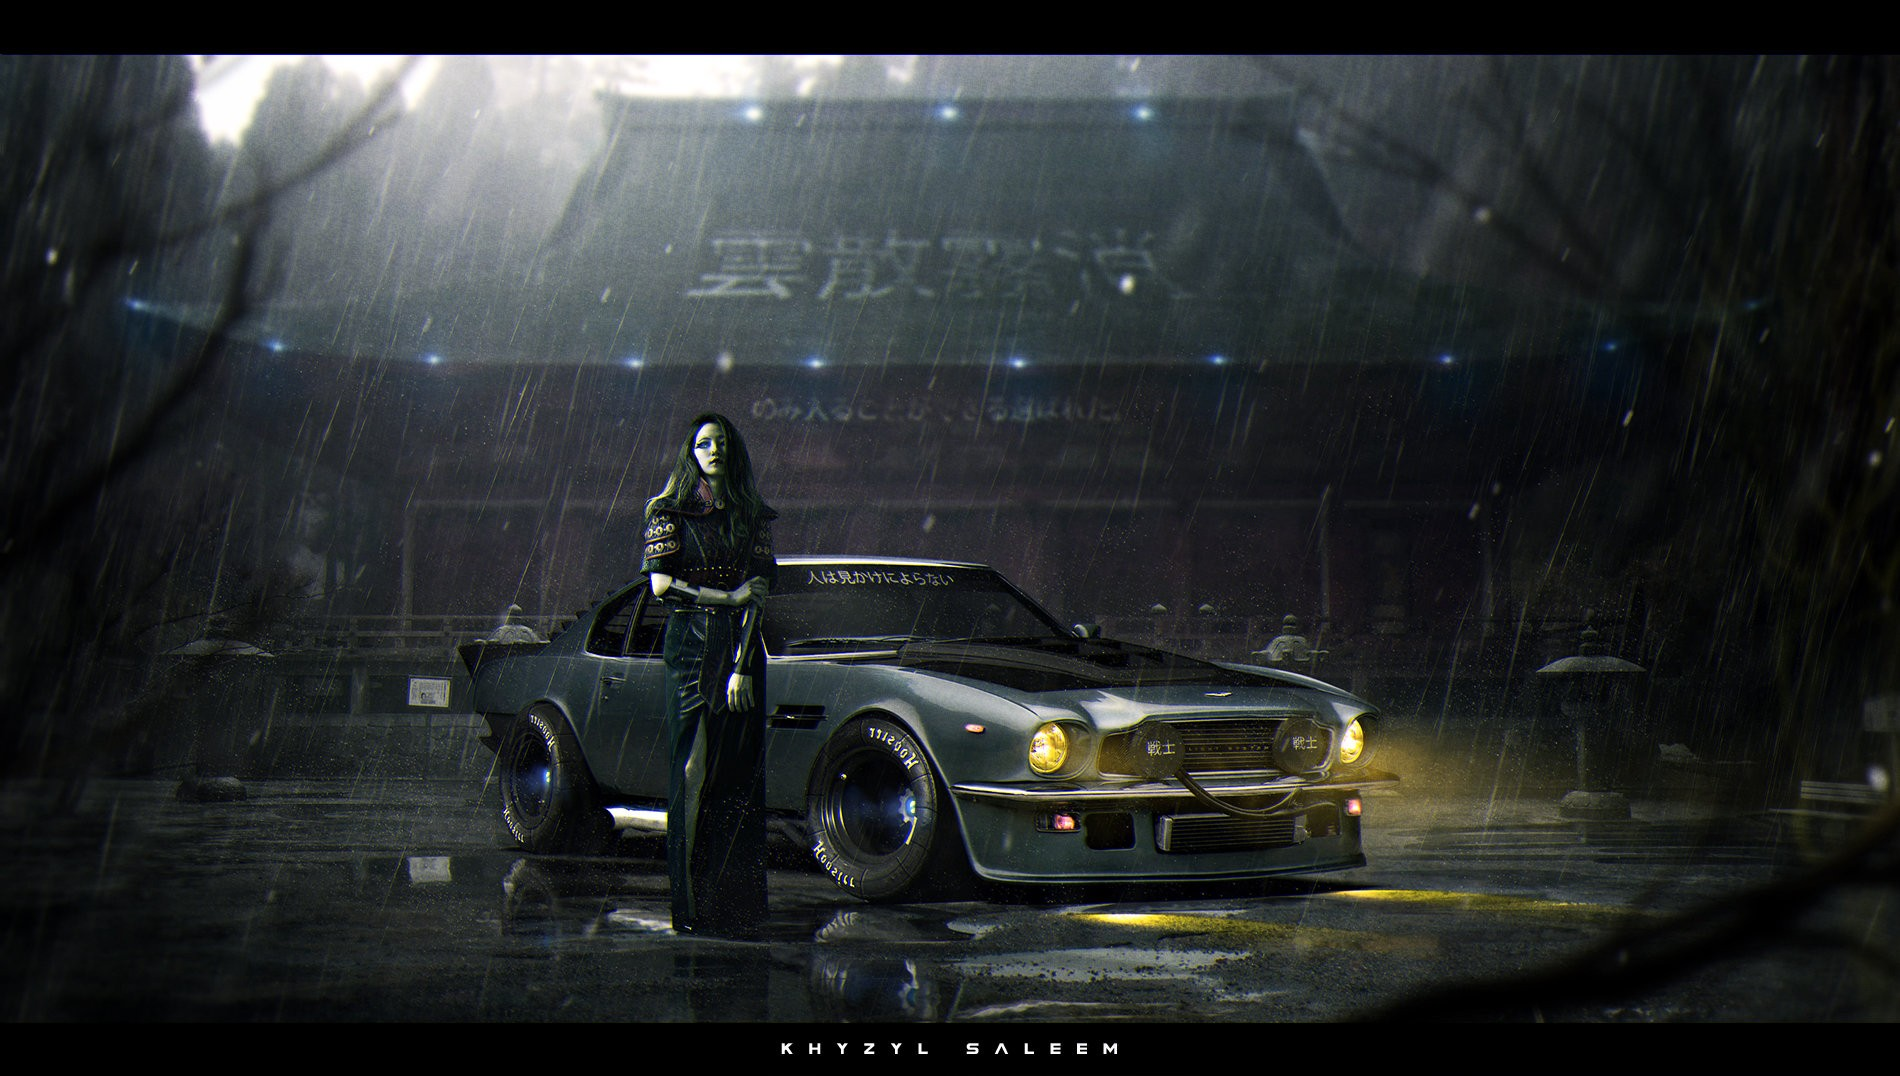 The Car Movie 1977 Wallpaper Car Stance Khyzylsaleem Ford Mustang Futuristic Rain